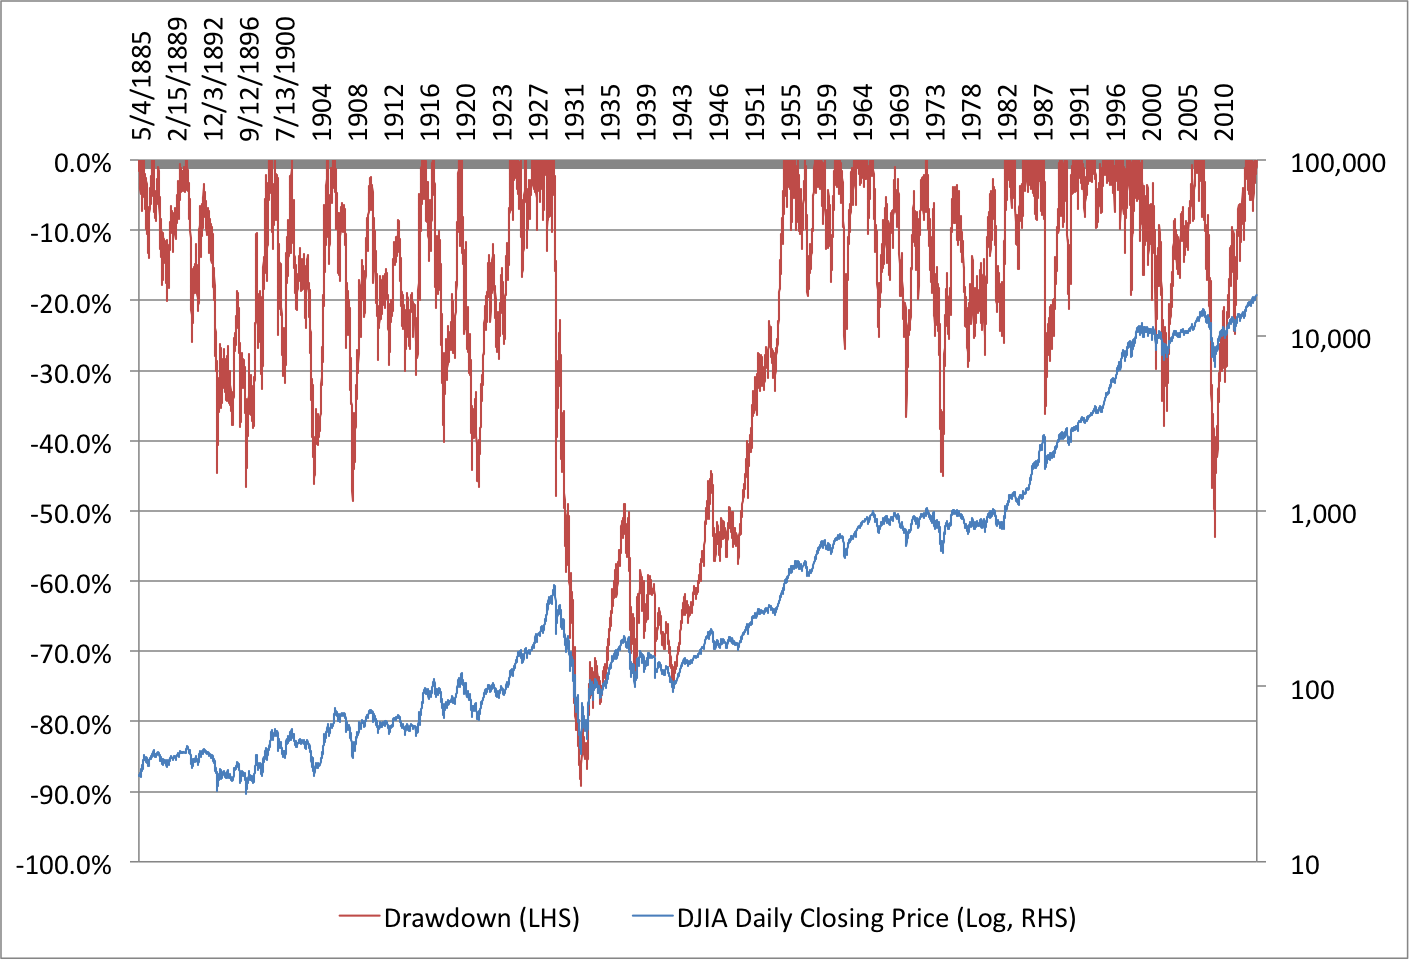 Daily Closing Prices and Drawdowns for the Dow Jones Industrial Average ($DJIA) from May 1885 to ...